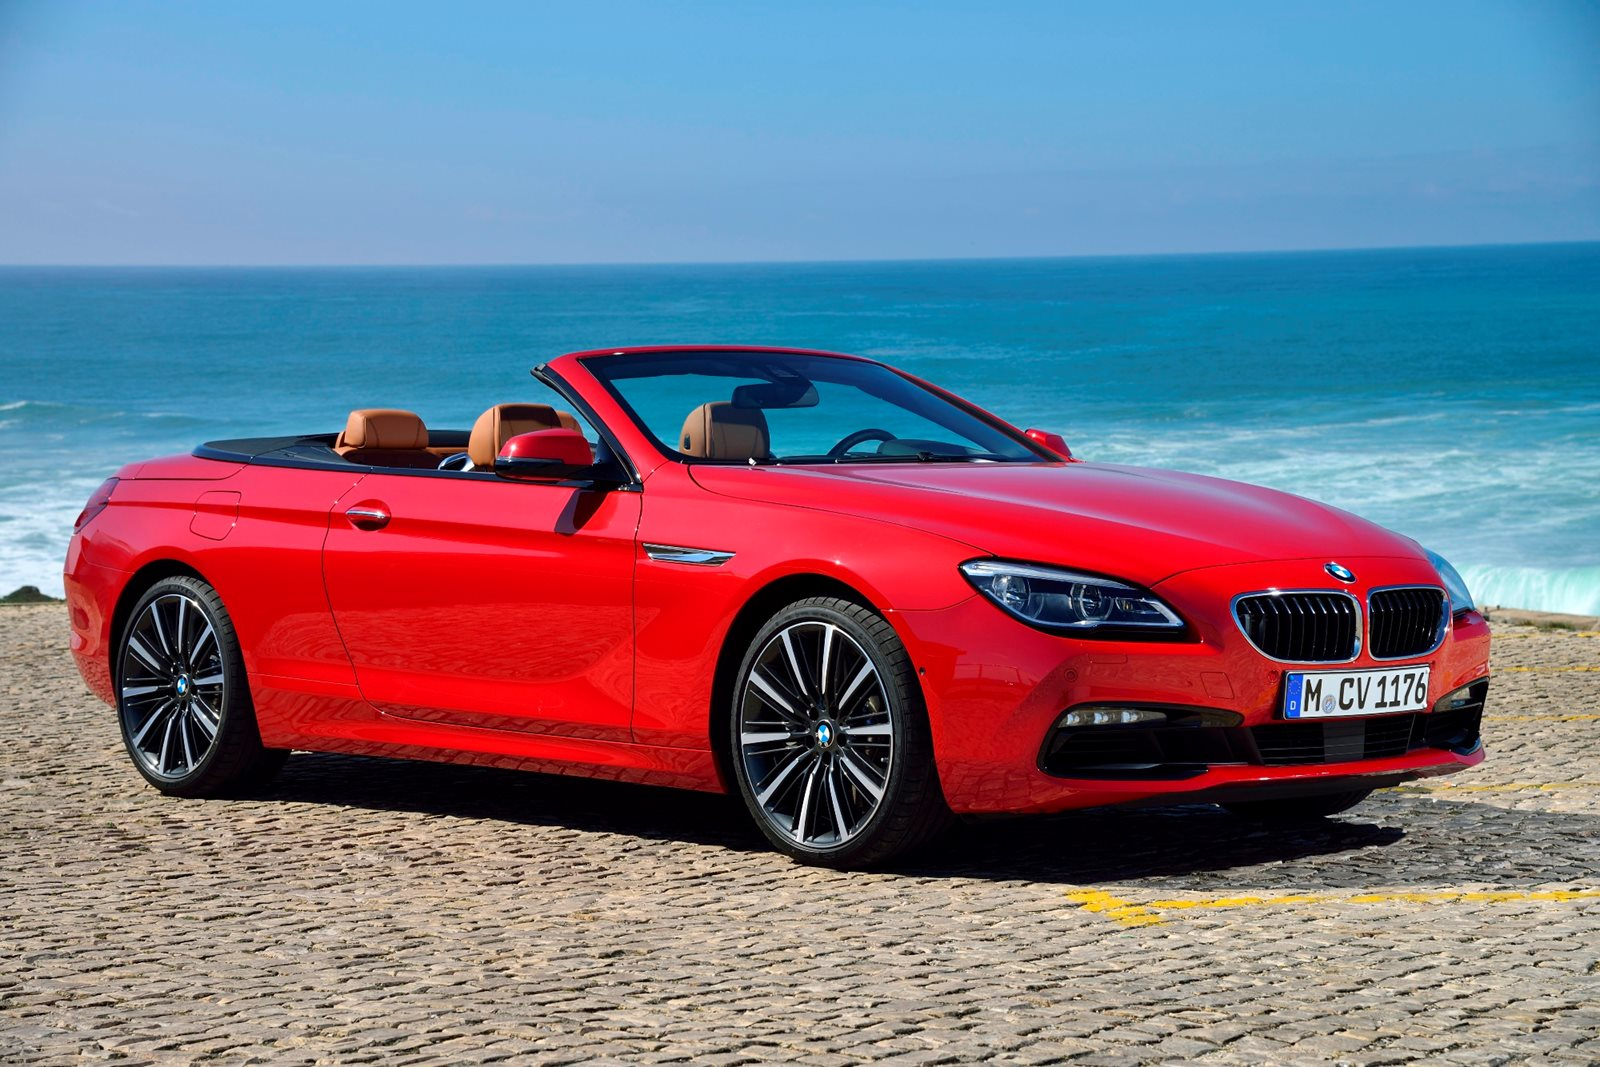 2018 bmw 6 series convertible review trims specs and price carbuzz. Black Bedroom Furniture Sets. Home Design Ideas